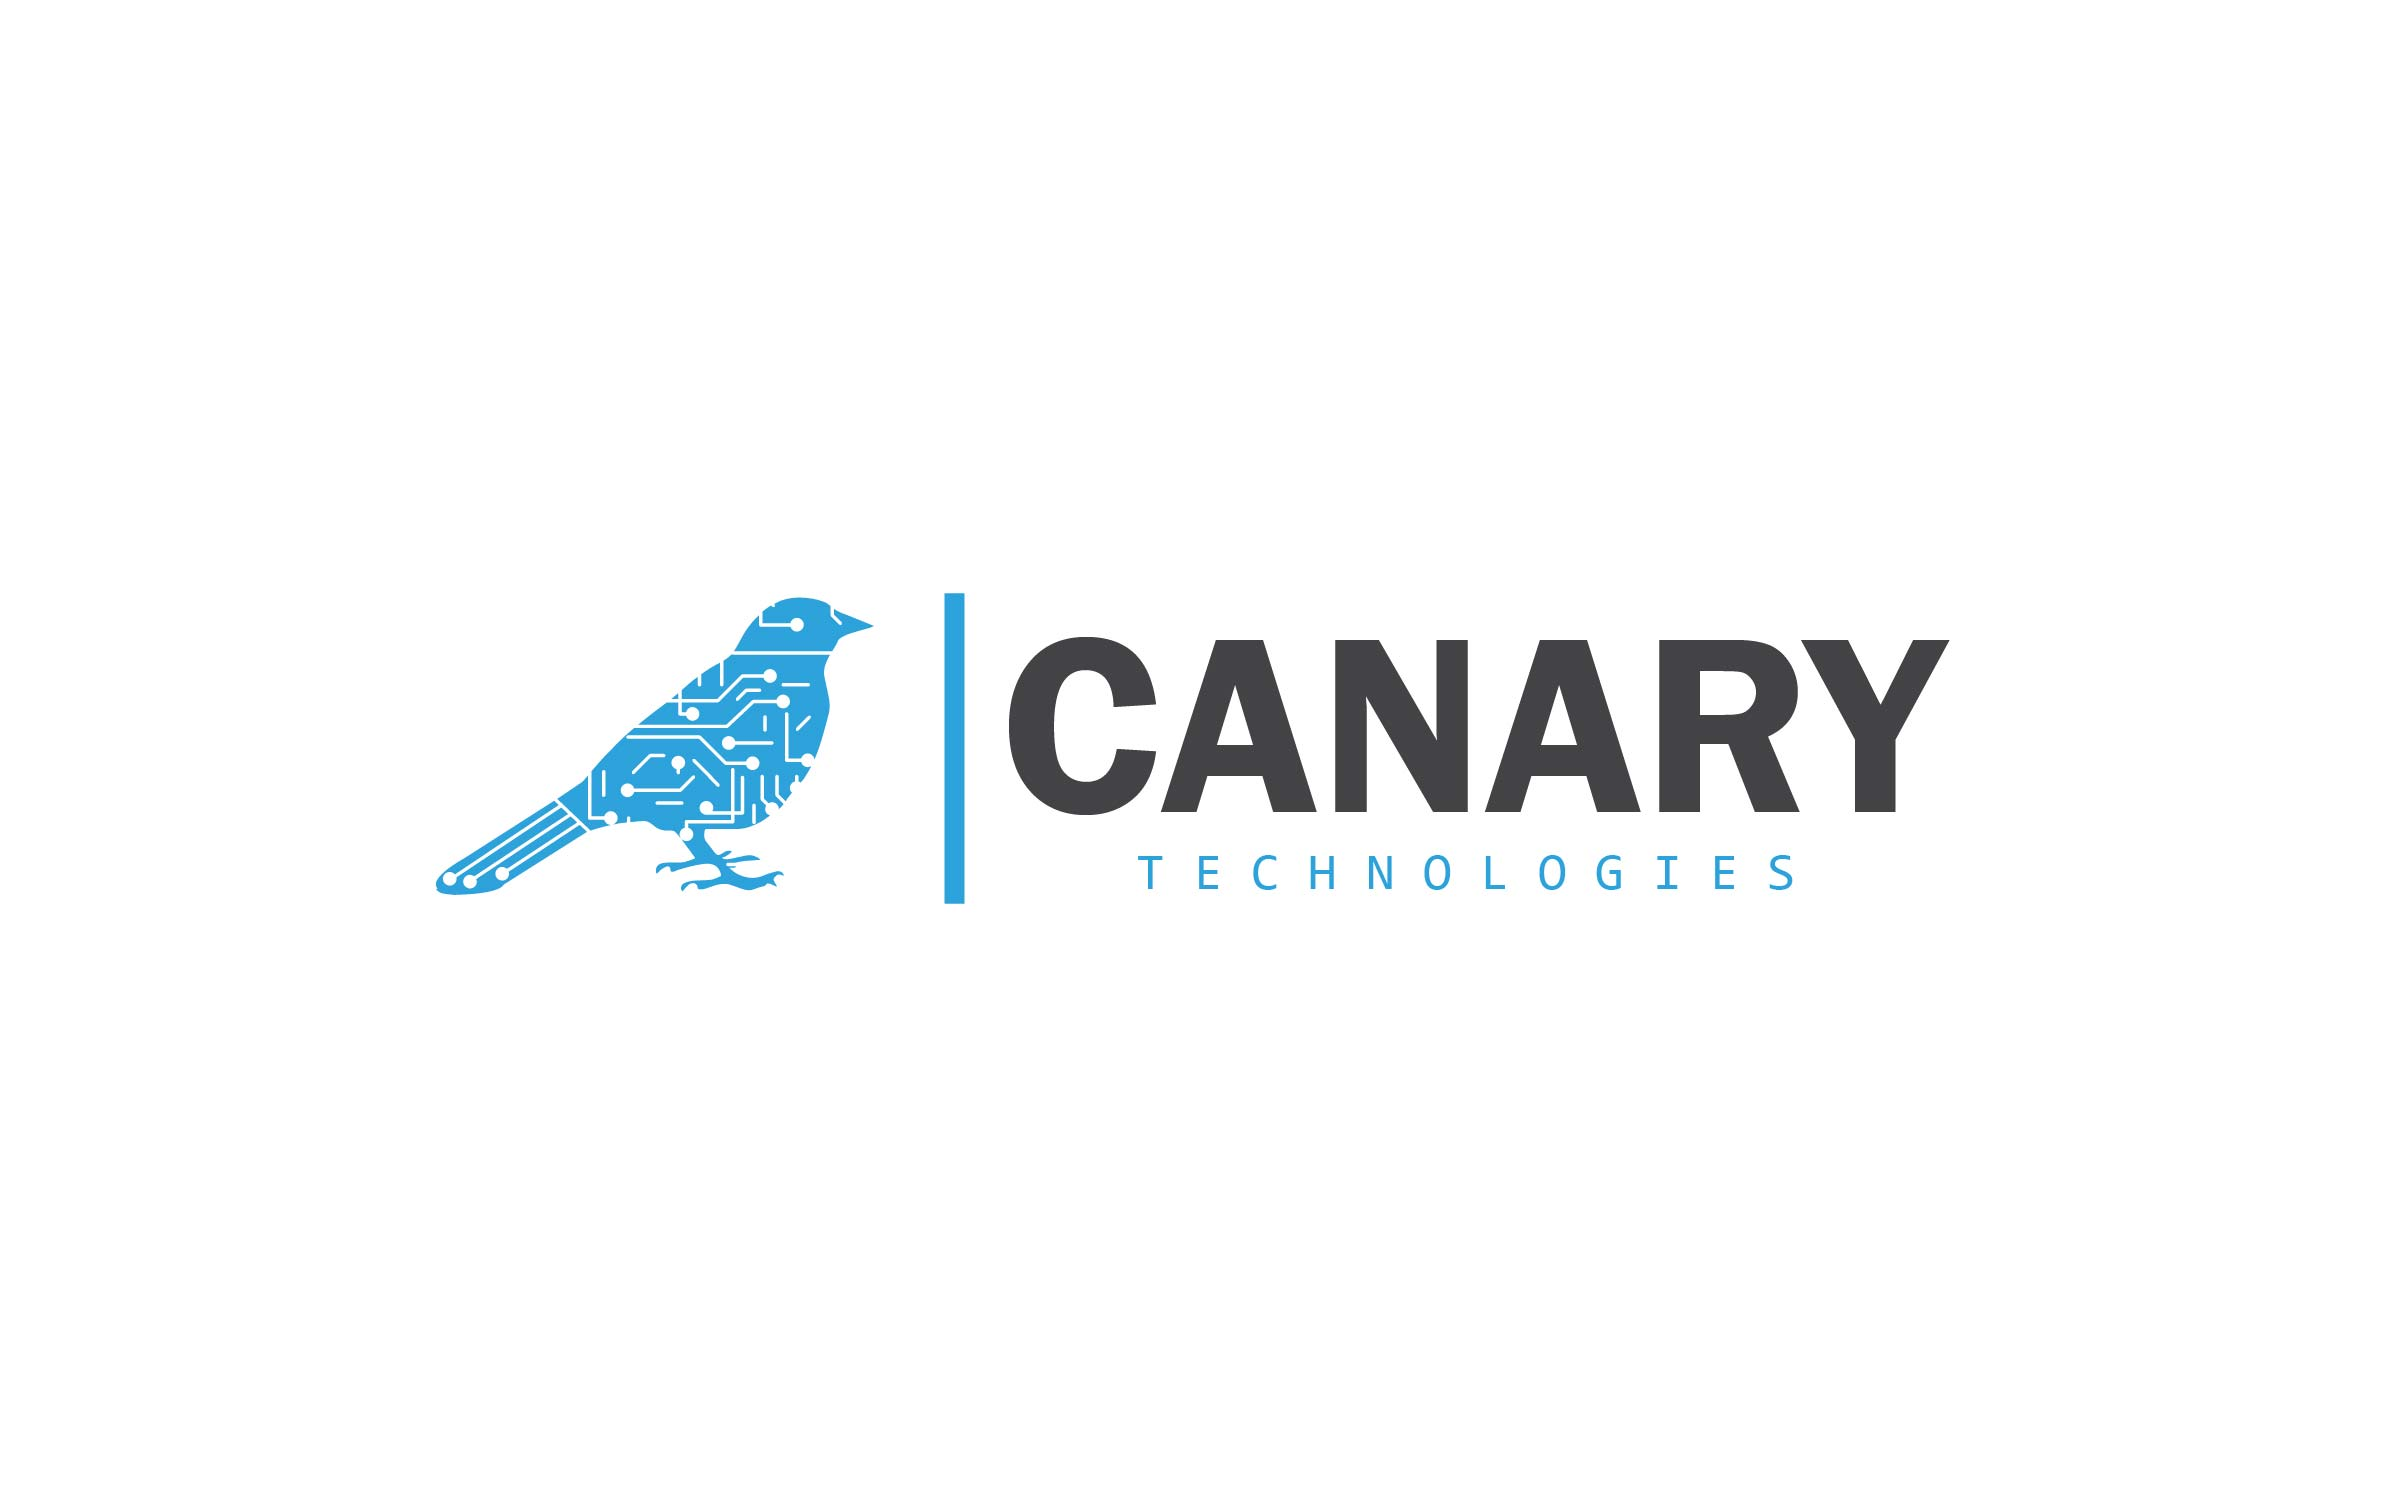 Jourjious Design - Canary logo.